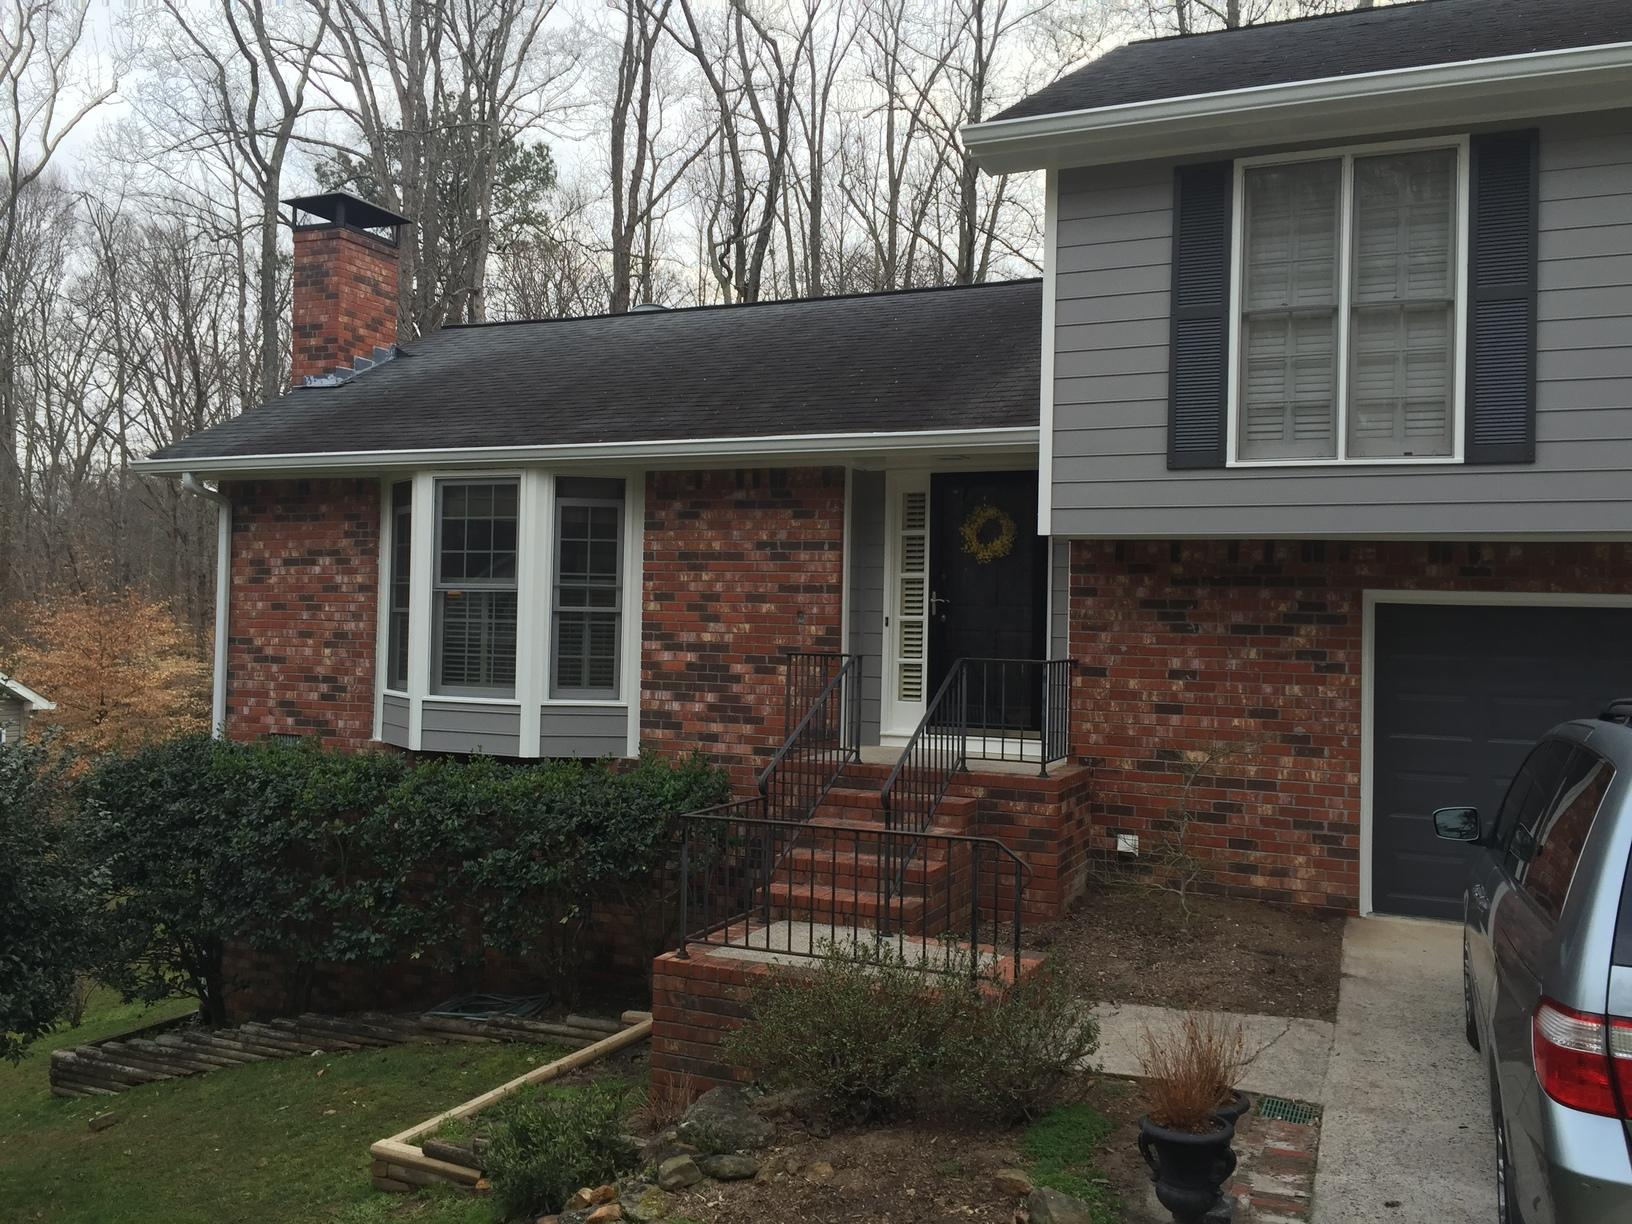 Bay Window Refreshed with New Siding in Marietta, GA - After Photo